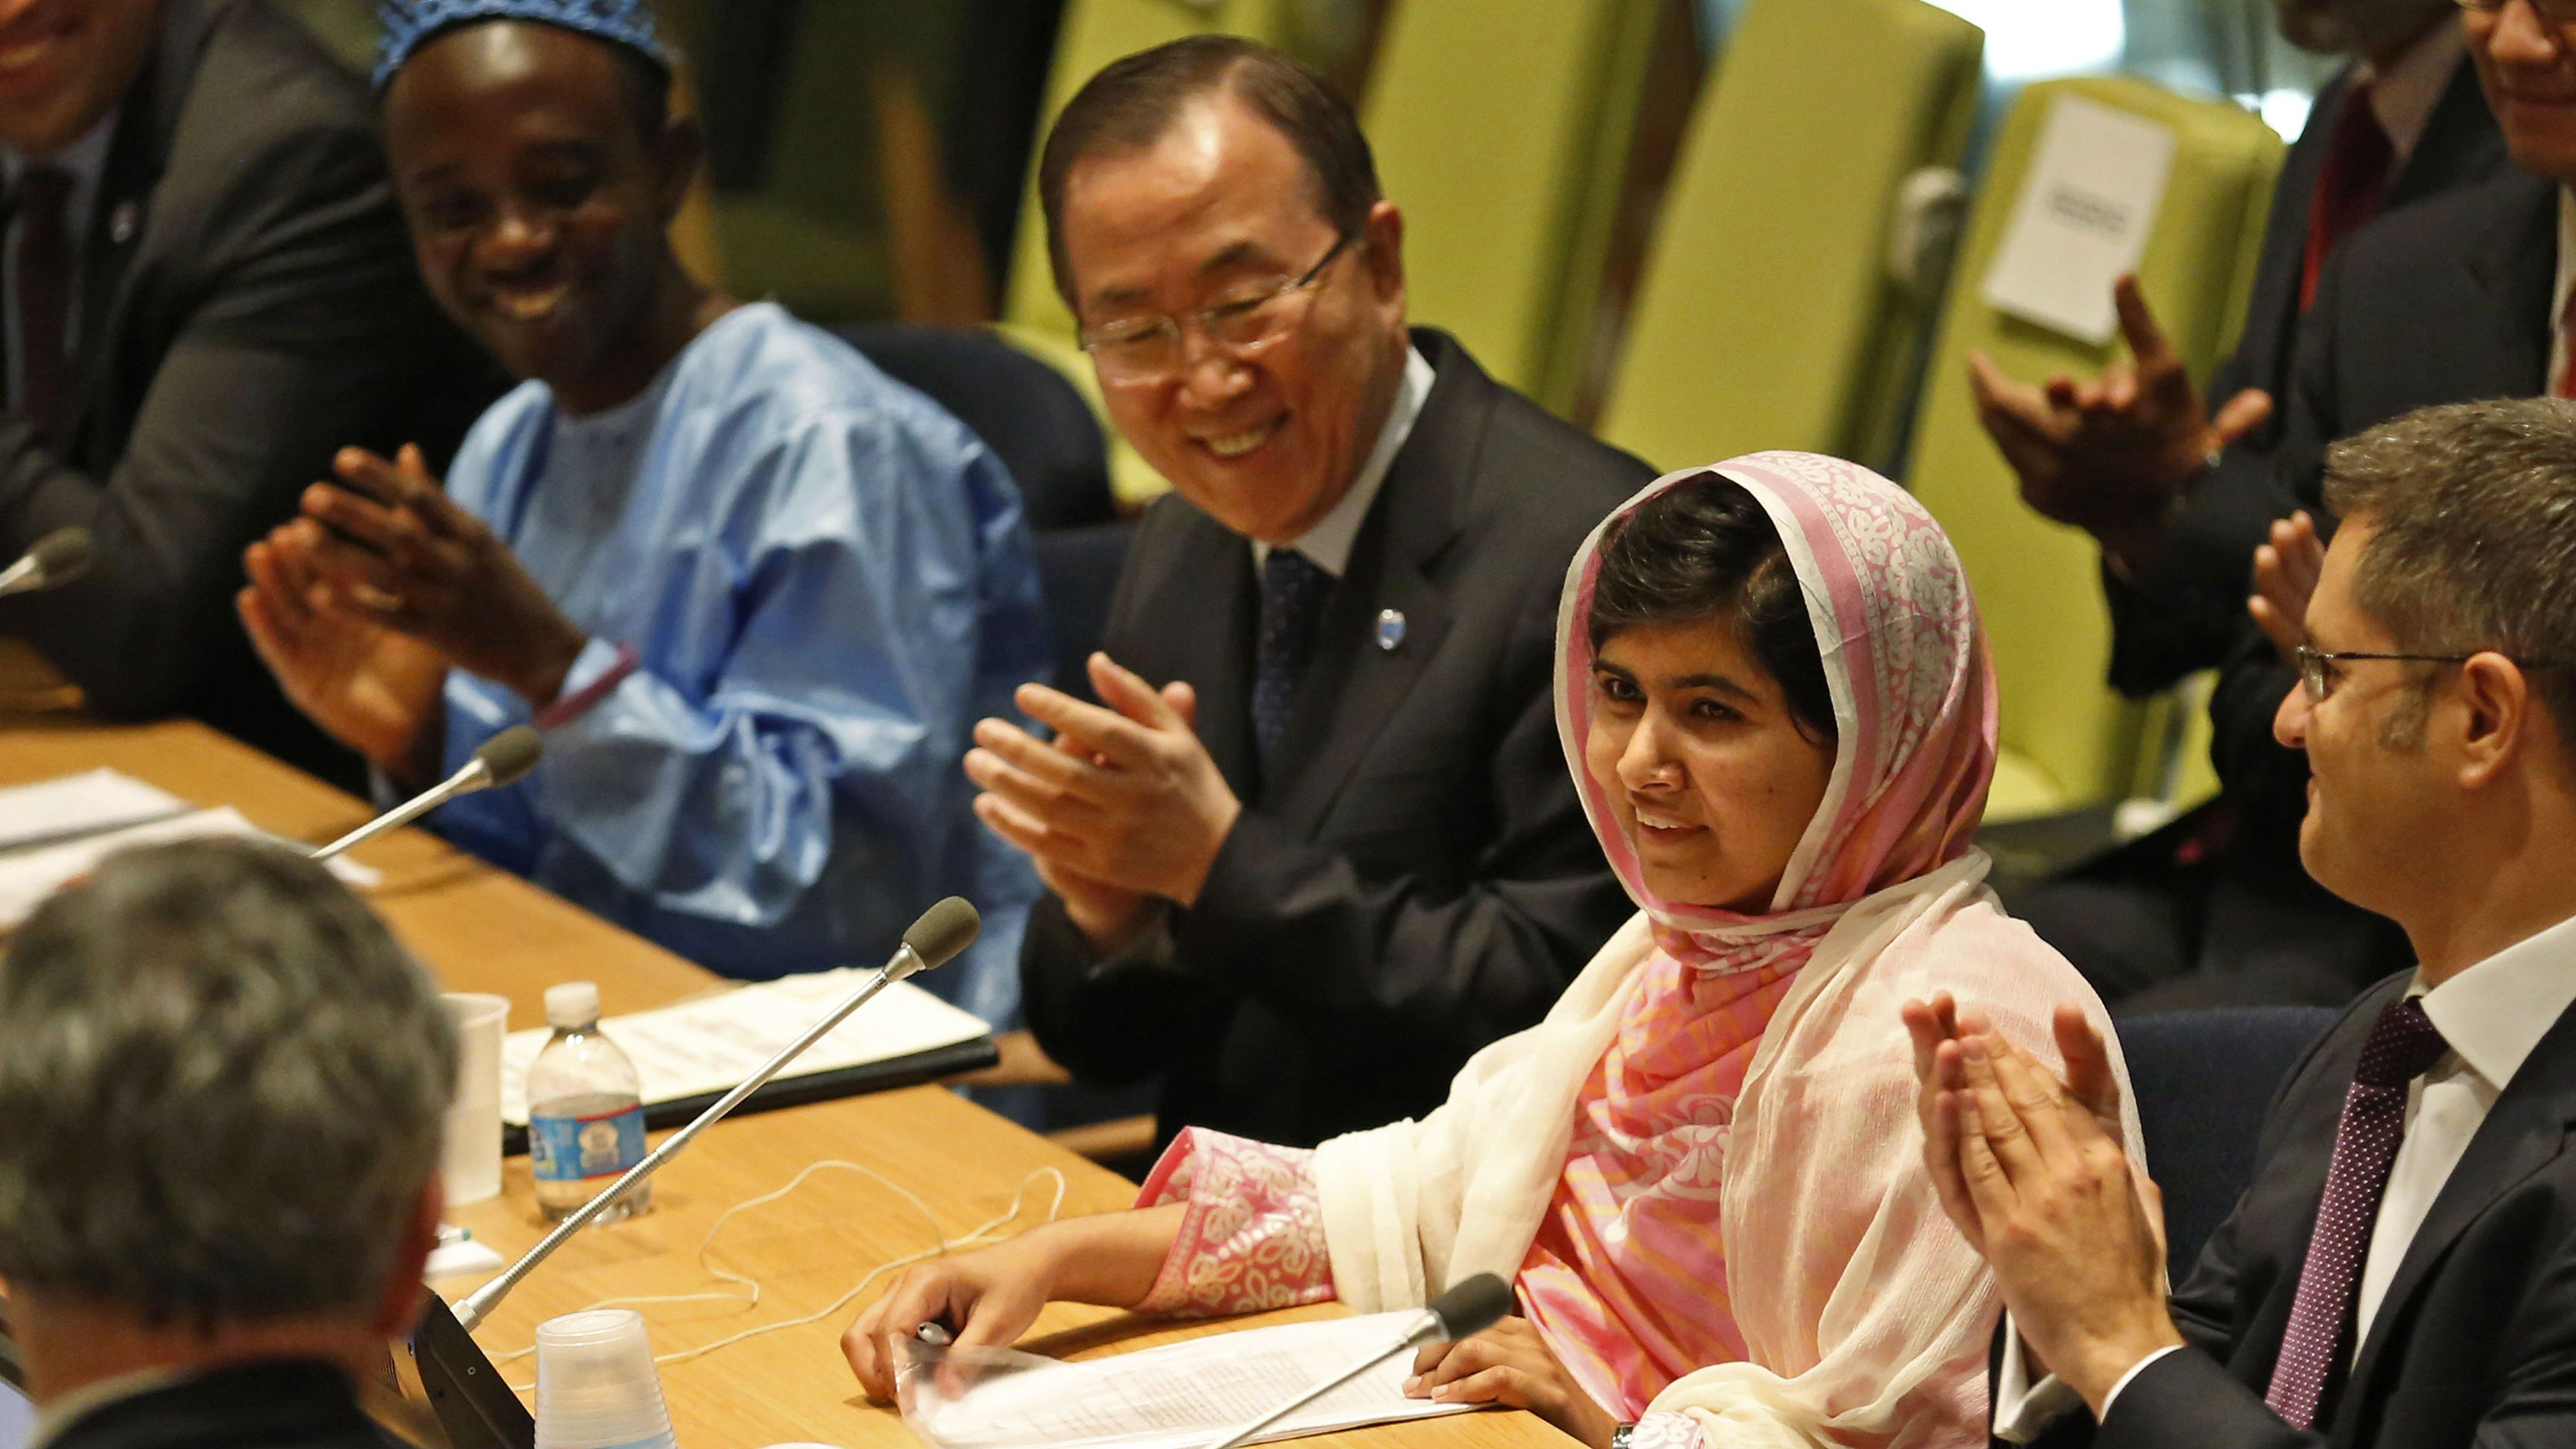 Malala Yousafzai (2nd R), is introduced before her first speech since the Taliban in Pakistan tried to kill her for advocating education for girls, at the United Nations Headquarters in New York, July 12, 2013.